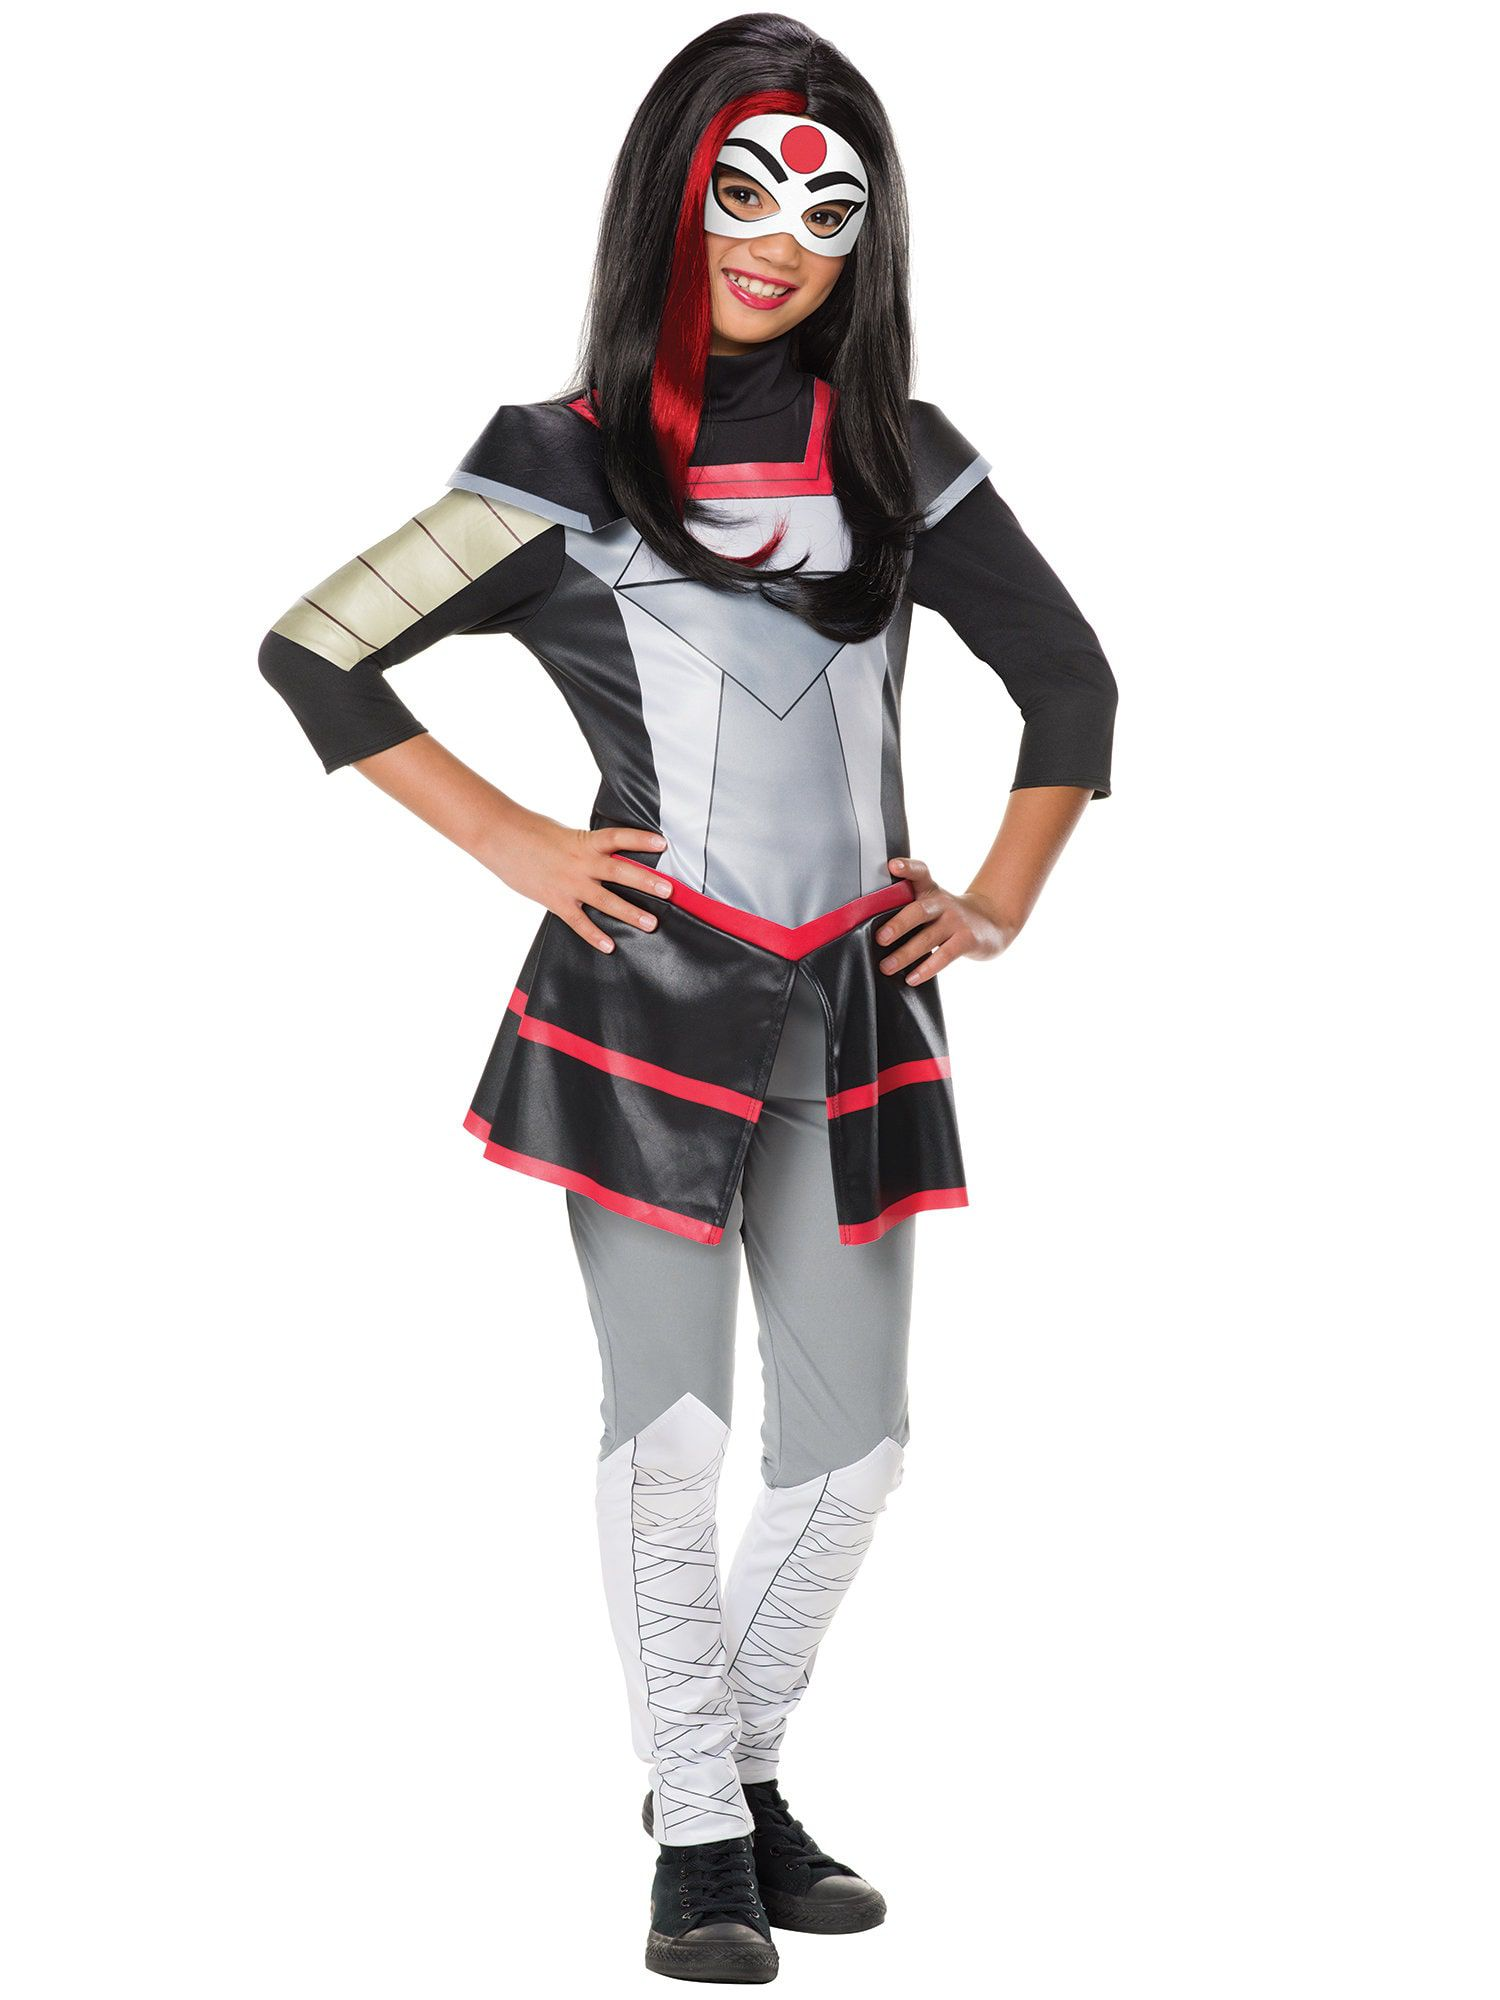 Dc Superhero Katana Deluxe Girls Costume Girls Costumes